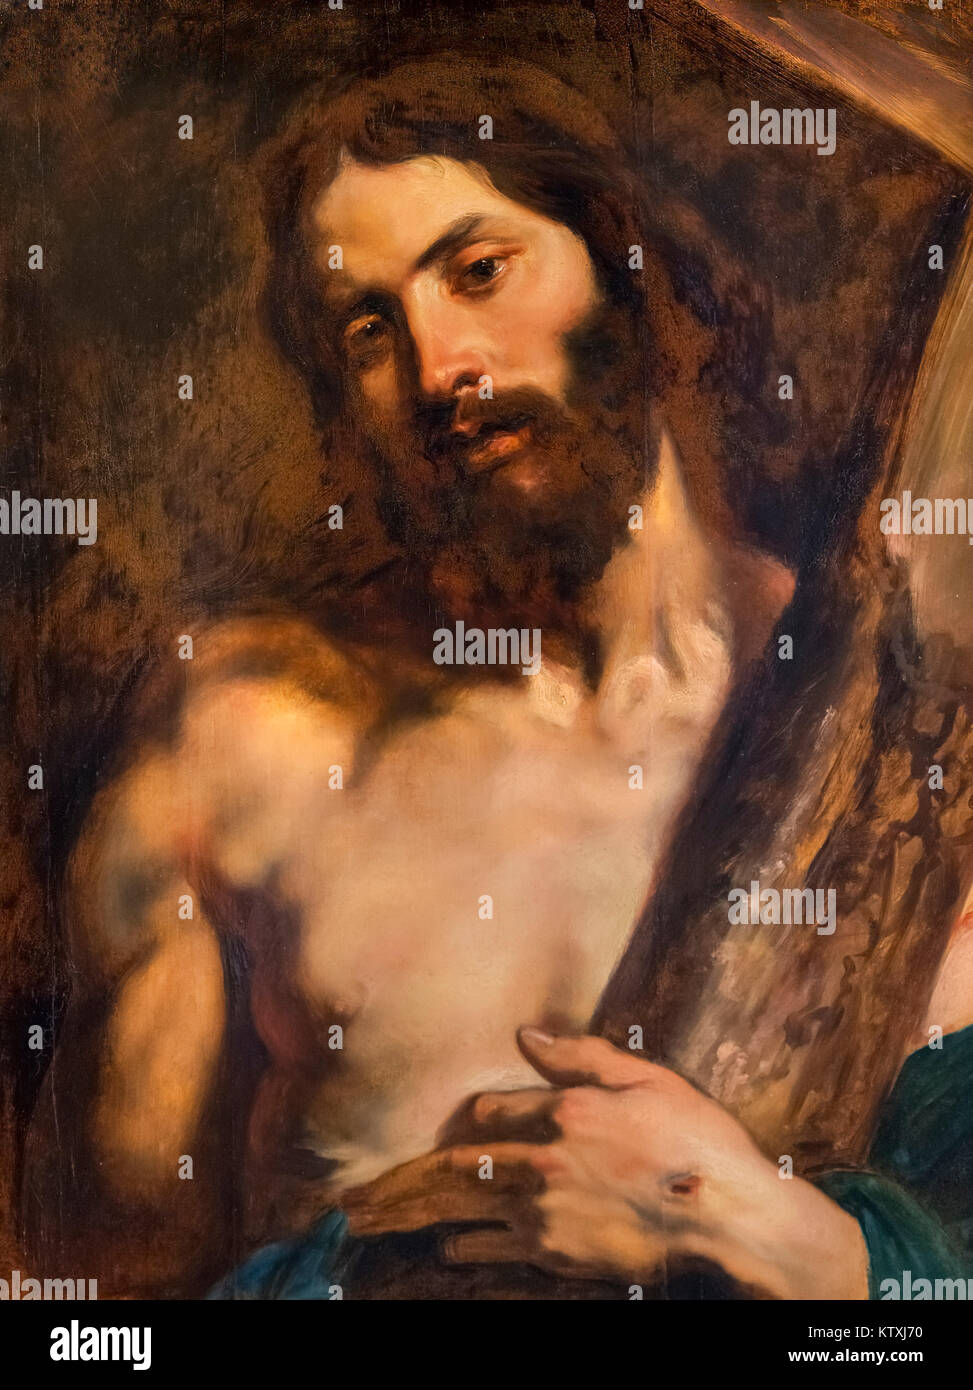 Jesus Christ Carrying the Cross by Sir Anthony van Dyck (1599-1641), oil on canvas, early 1600s - Stock Image